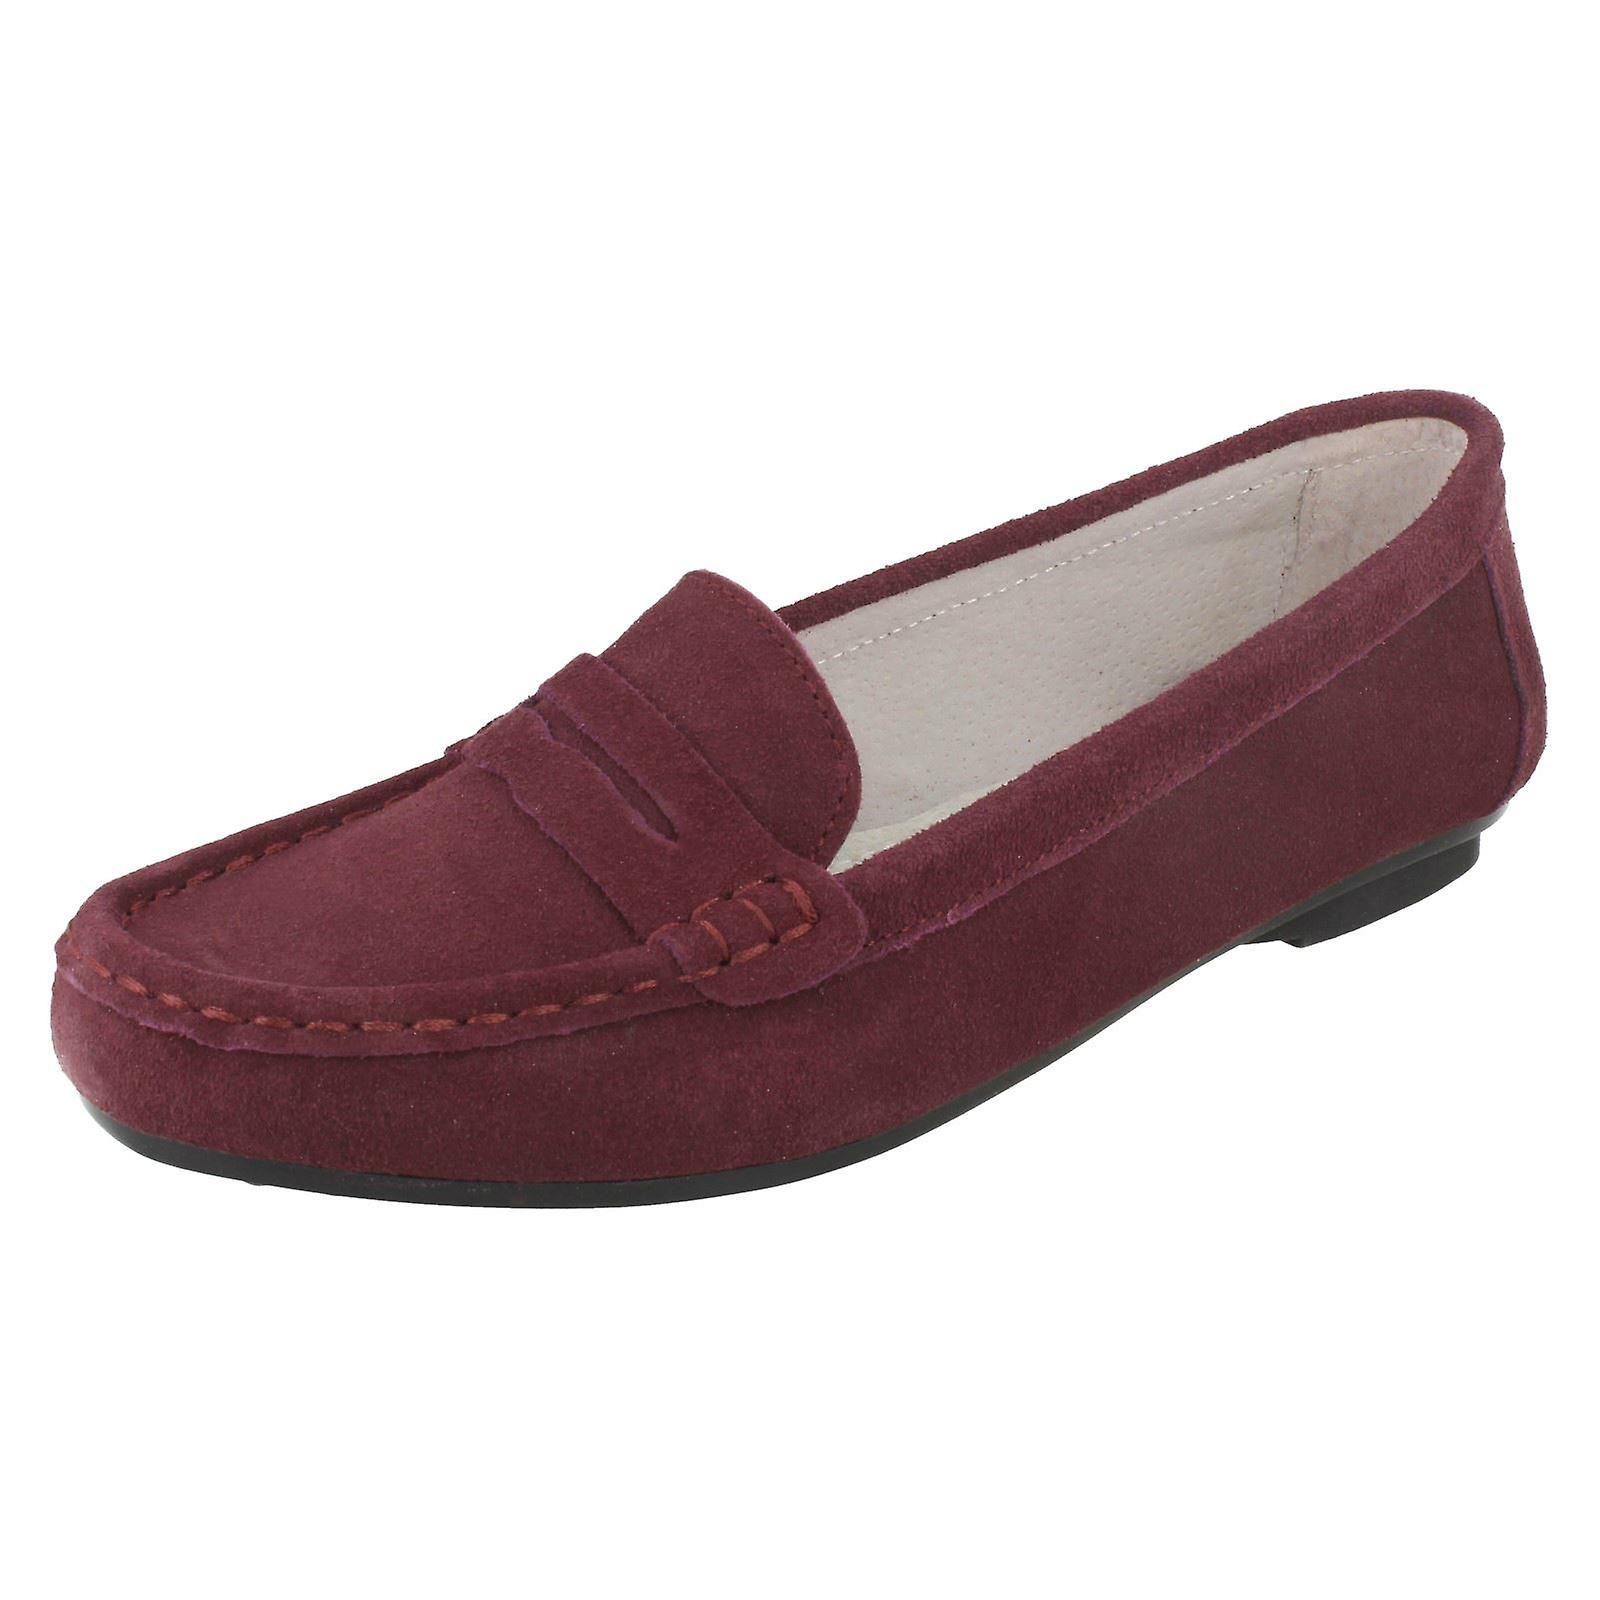 Ladies Down To Earth Moccasin Shoe 'F8996' AfIMh